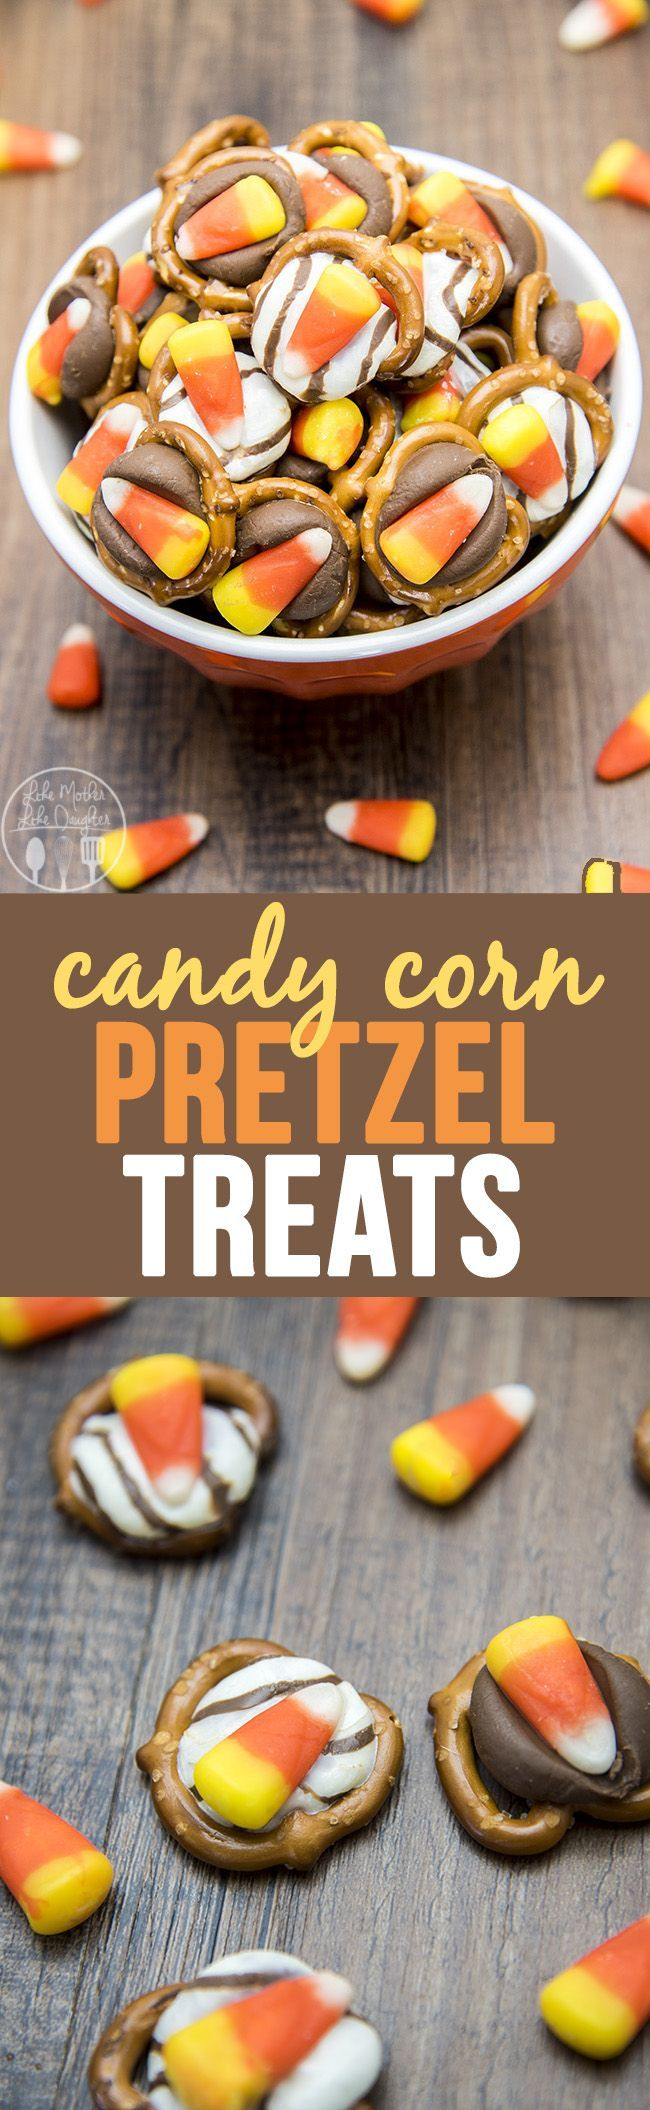 Candy Corn Pretzel Treats                                                                                                                                                     More